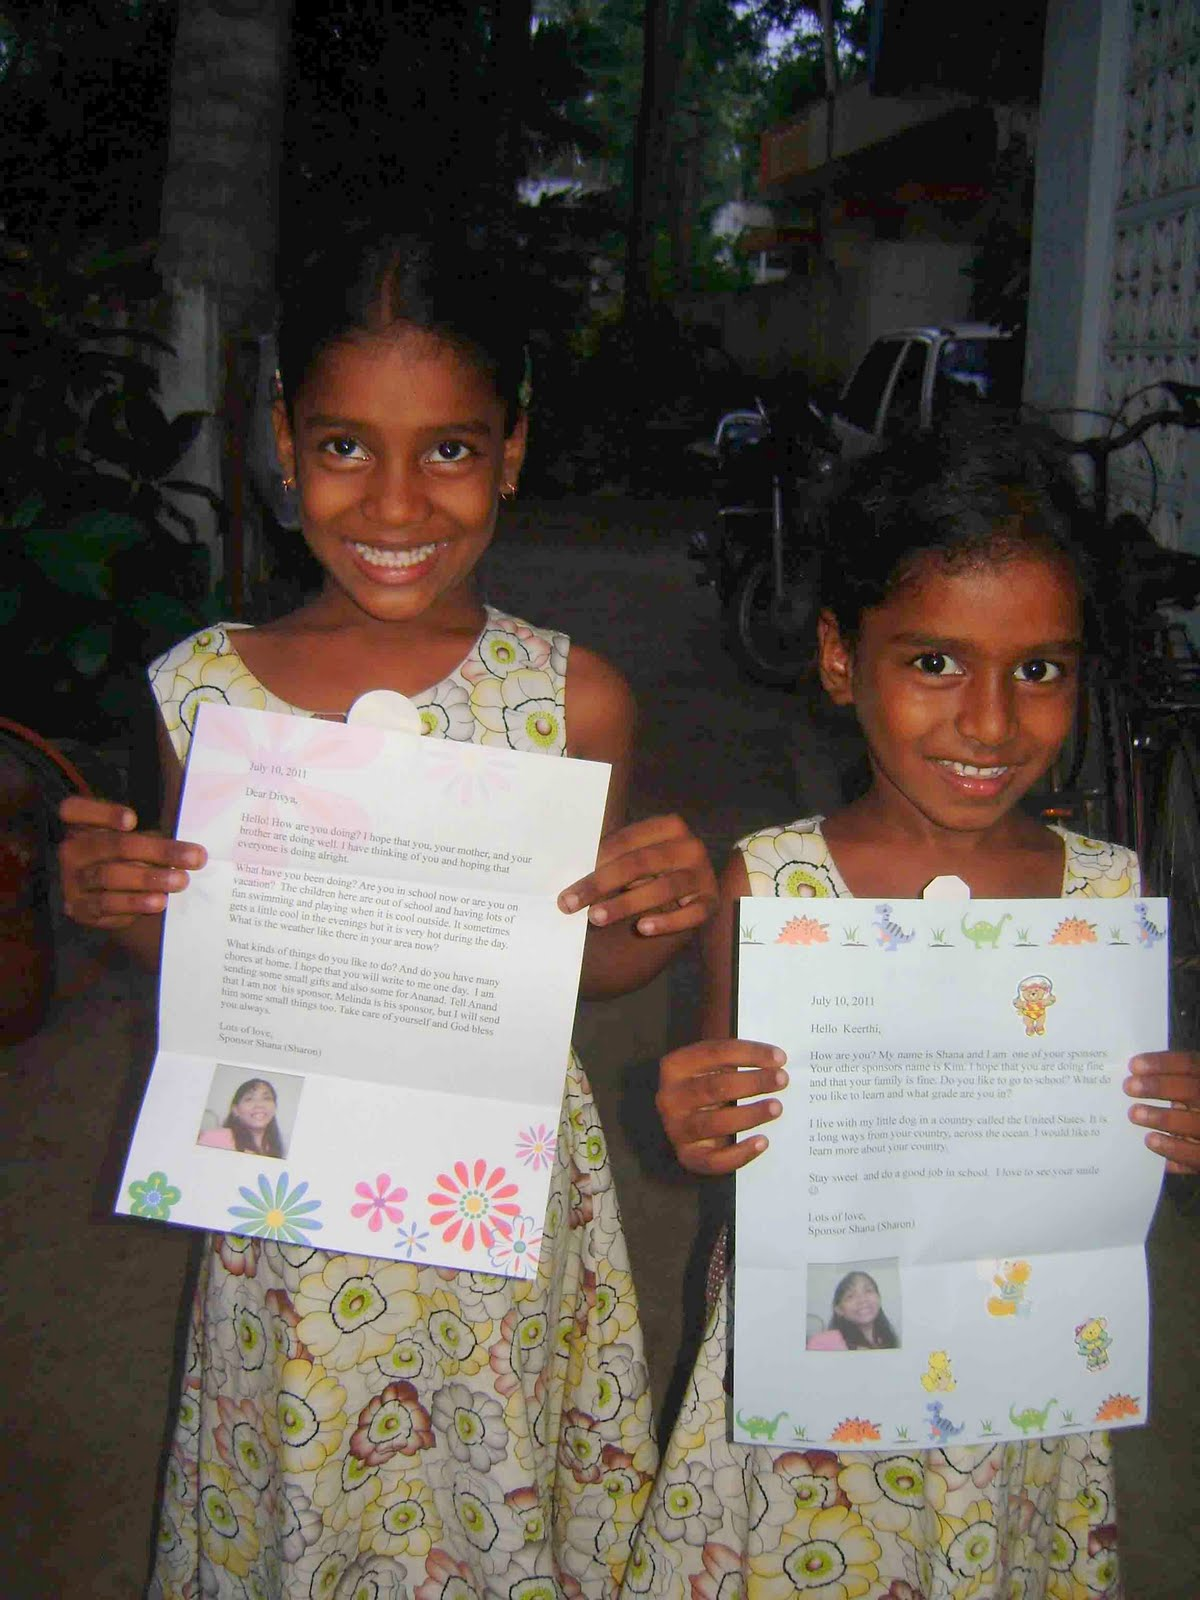 Tales of child sponsorship letter from a sponsored child sponsor we are very grateful that you choose to support us i want to tell you the kinds of things compassion provides us each time i visit the project thecheapjerseys Images